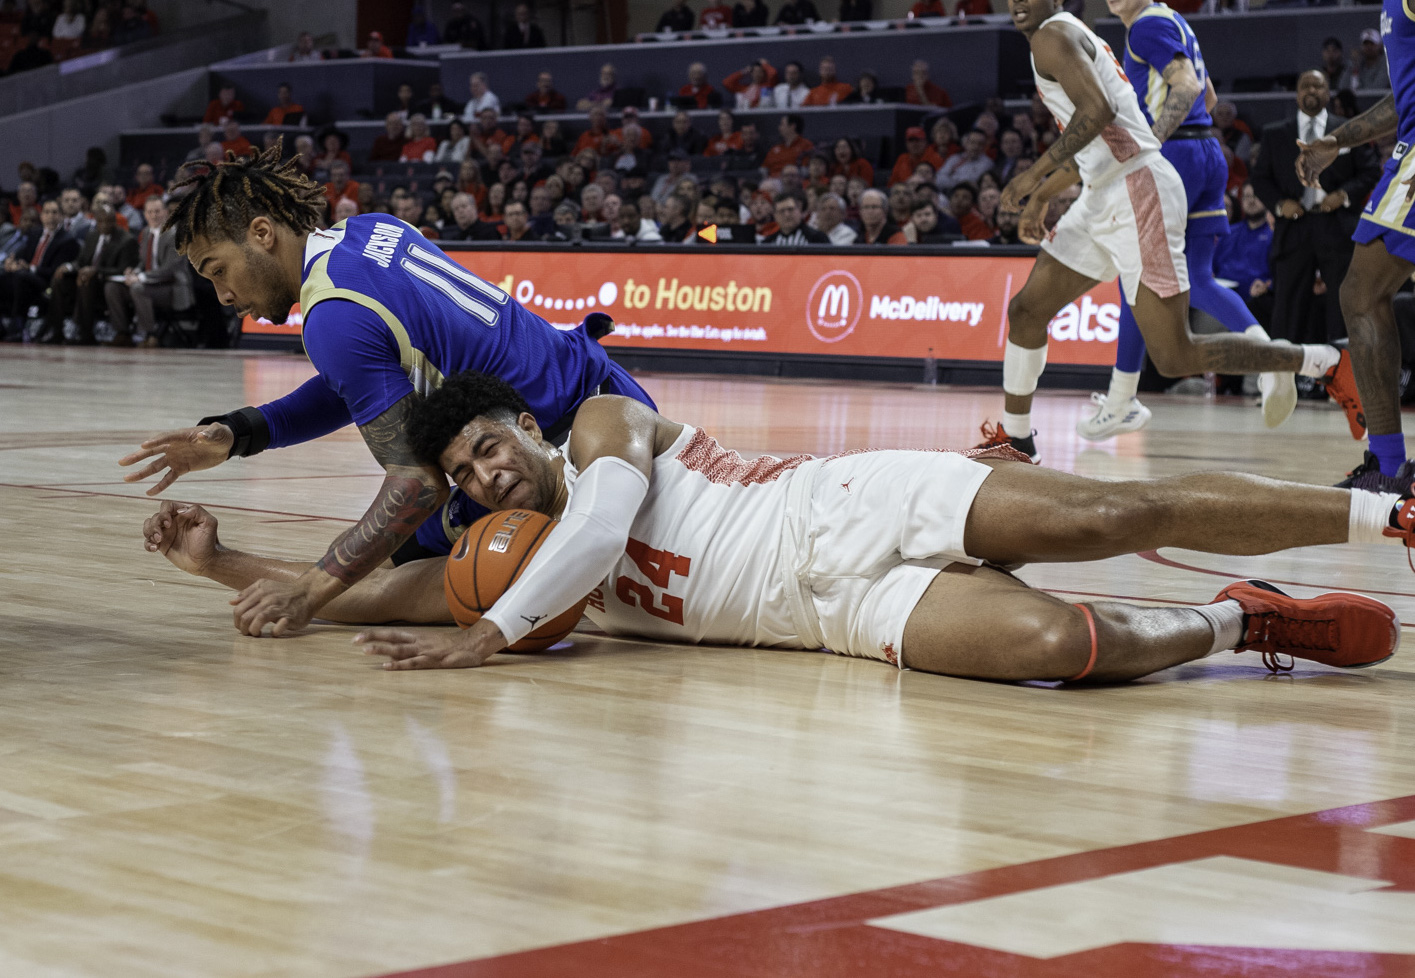 Sophomore guard Quentin Grimes went down hard on his pelvis in Houston's 76-43 win over Tulsa on Wednesday night at Fertitta Center, keeping him out for the rest of the game with a hip pointer. | Katrina Martinez/The Cougar